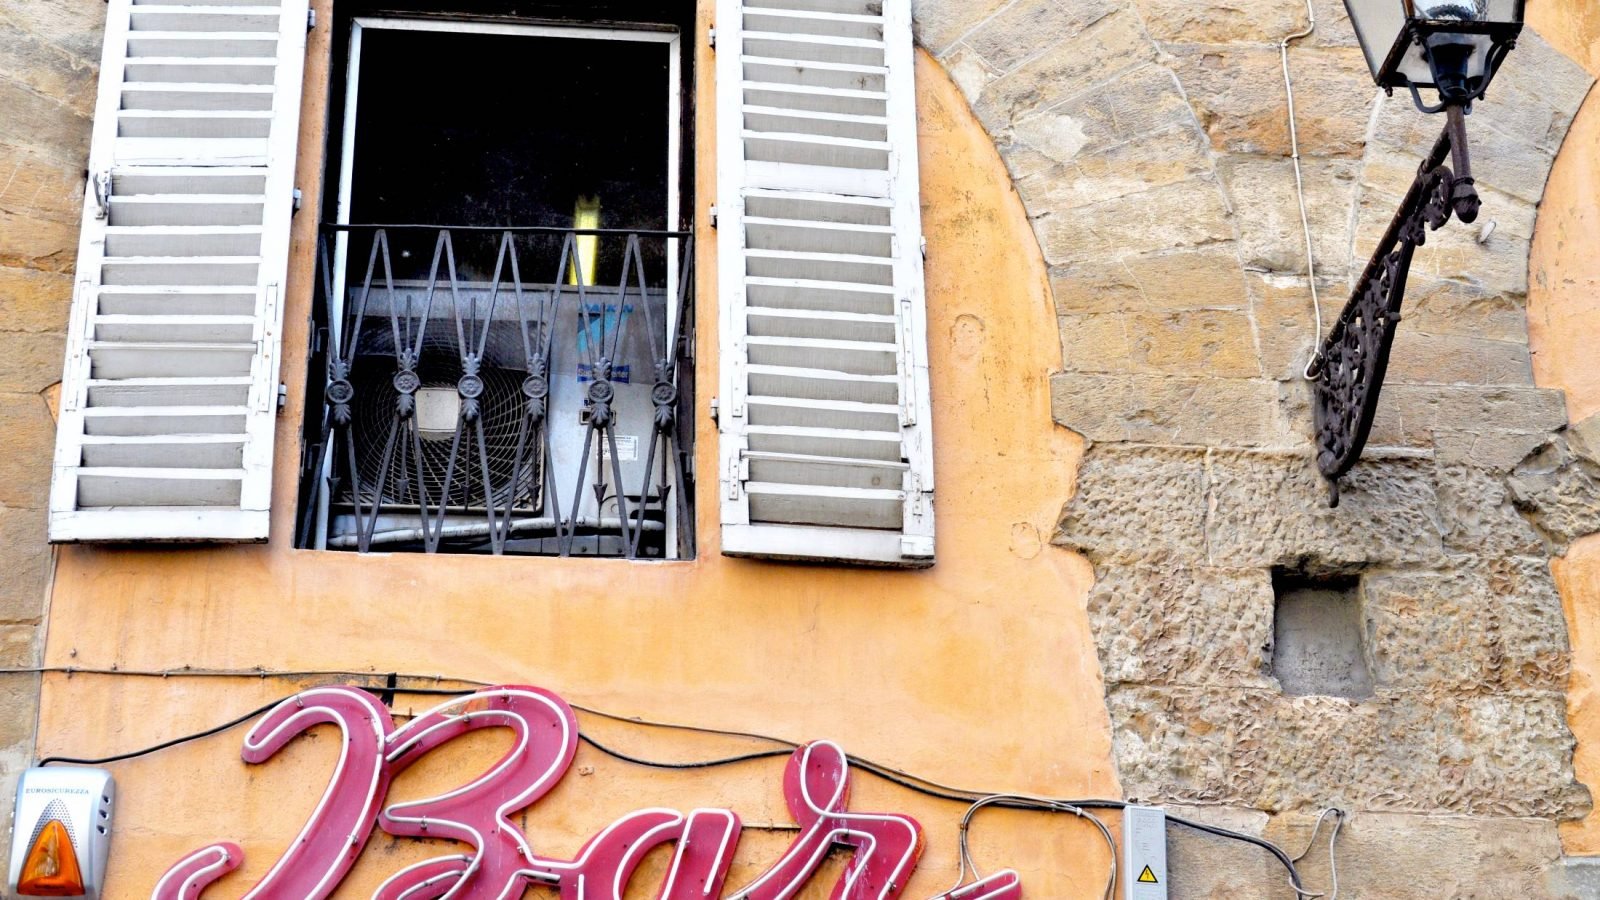 House with a balcony over a bar sign in Florence